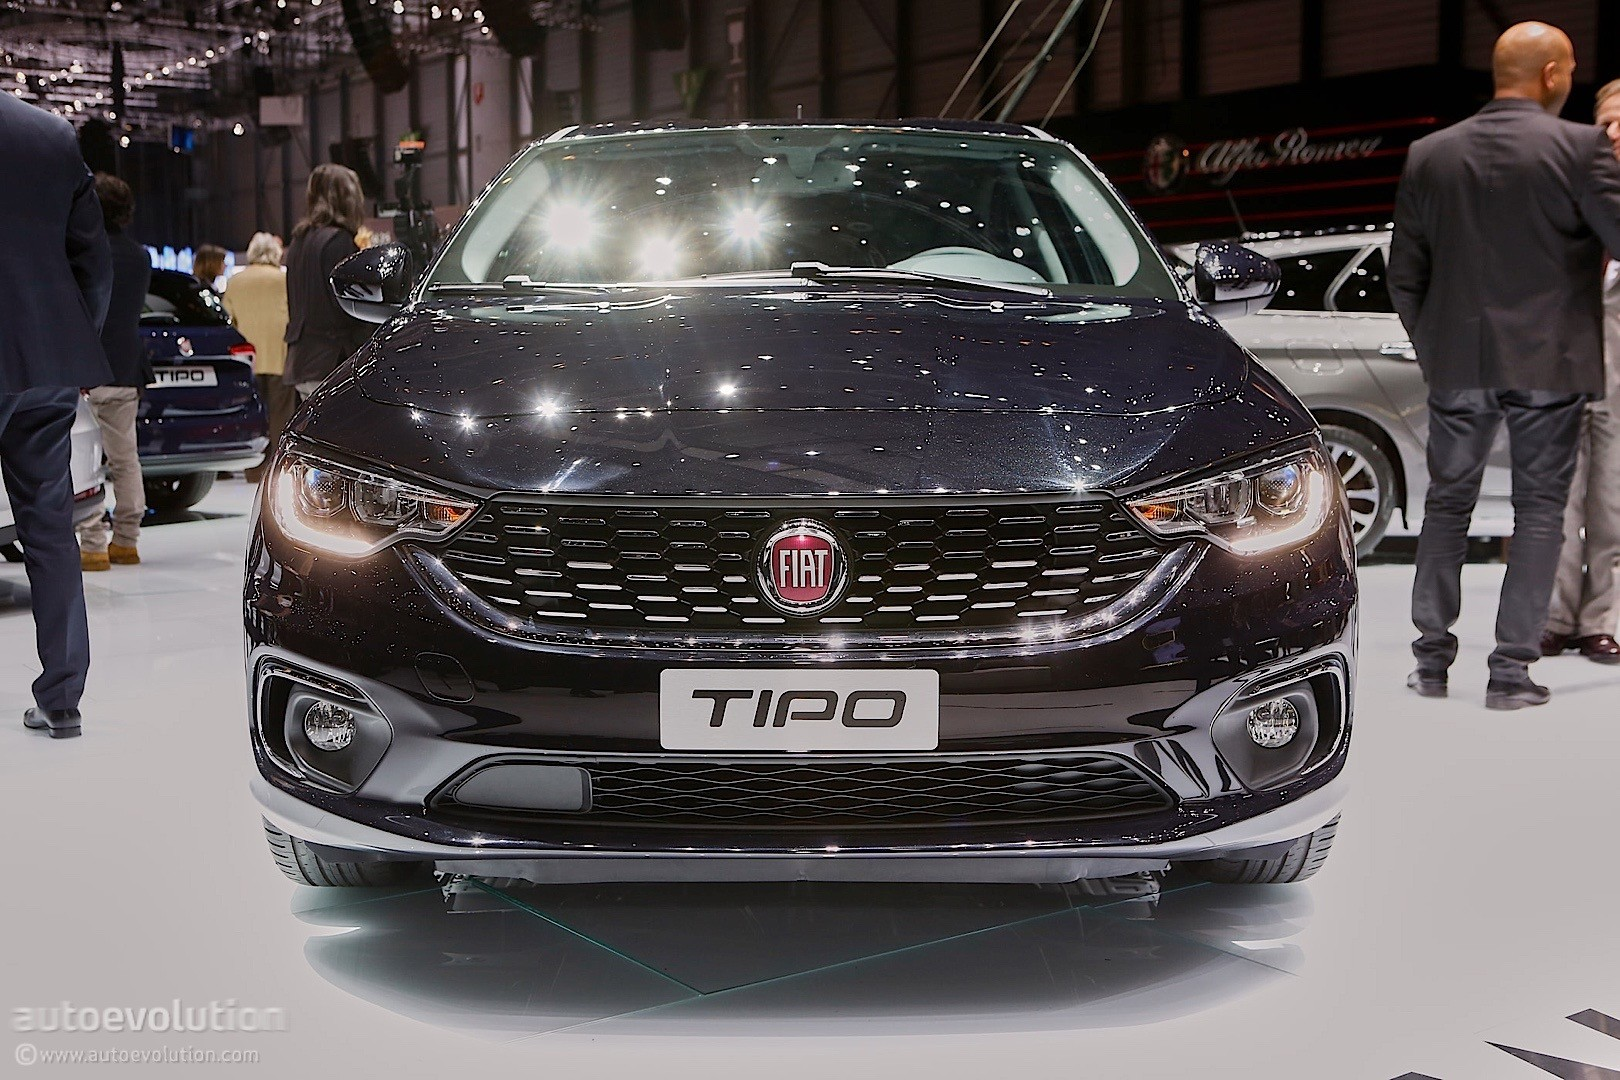 Fiat Tipo Abarth Coming With At Least 180 Hp Turbo